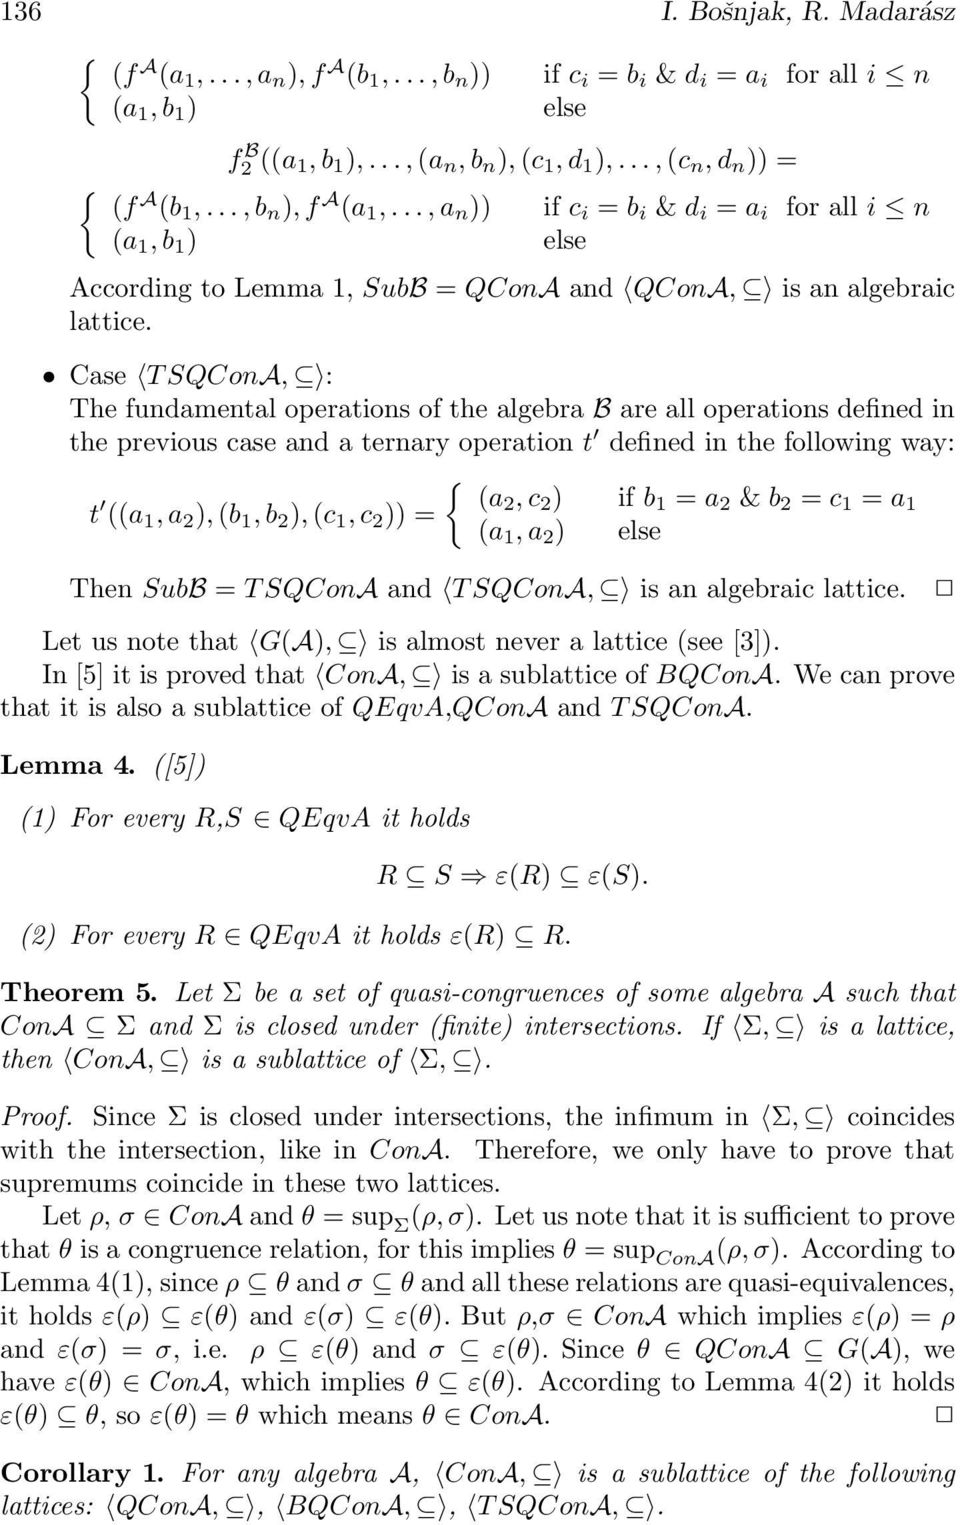 Case T SQConA, : The fundamental operations of the algebra B are all operations defined in the previous case and a ternary operation t defined in the following way: { t (a2, c ((a 1, a 2 ), (b 1, b 2